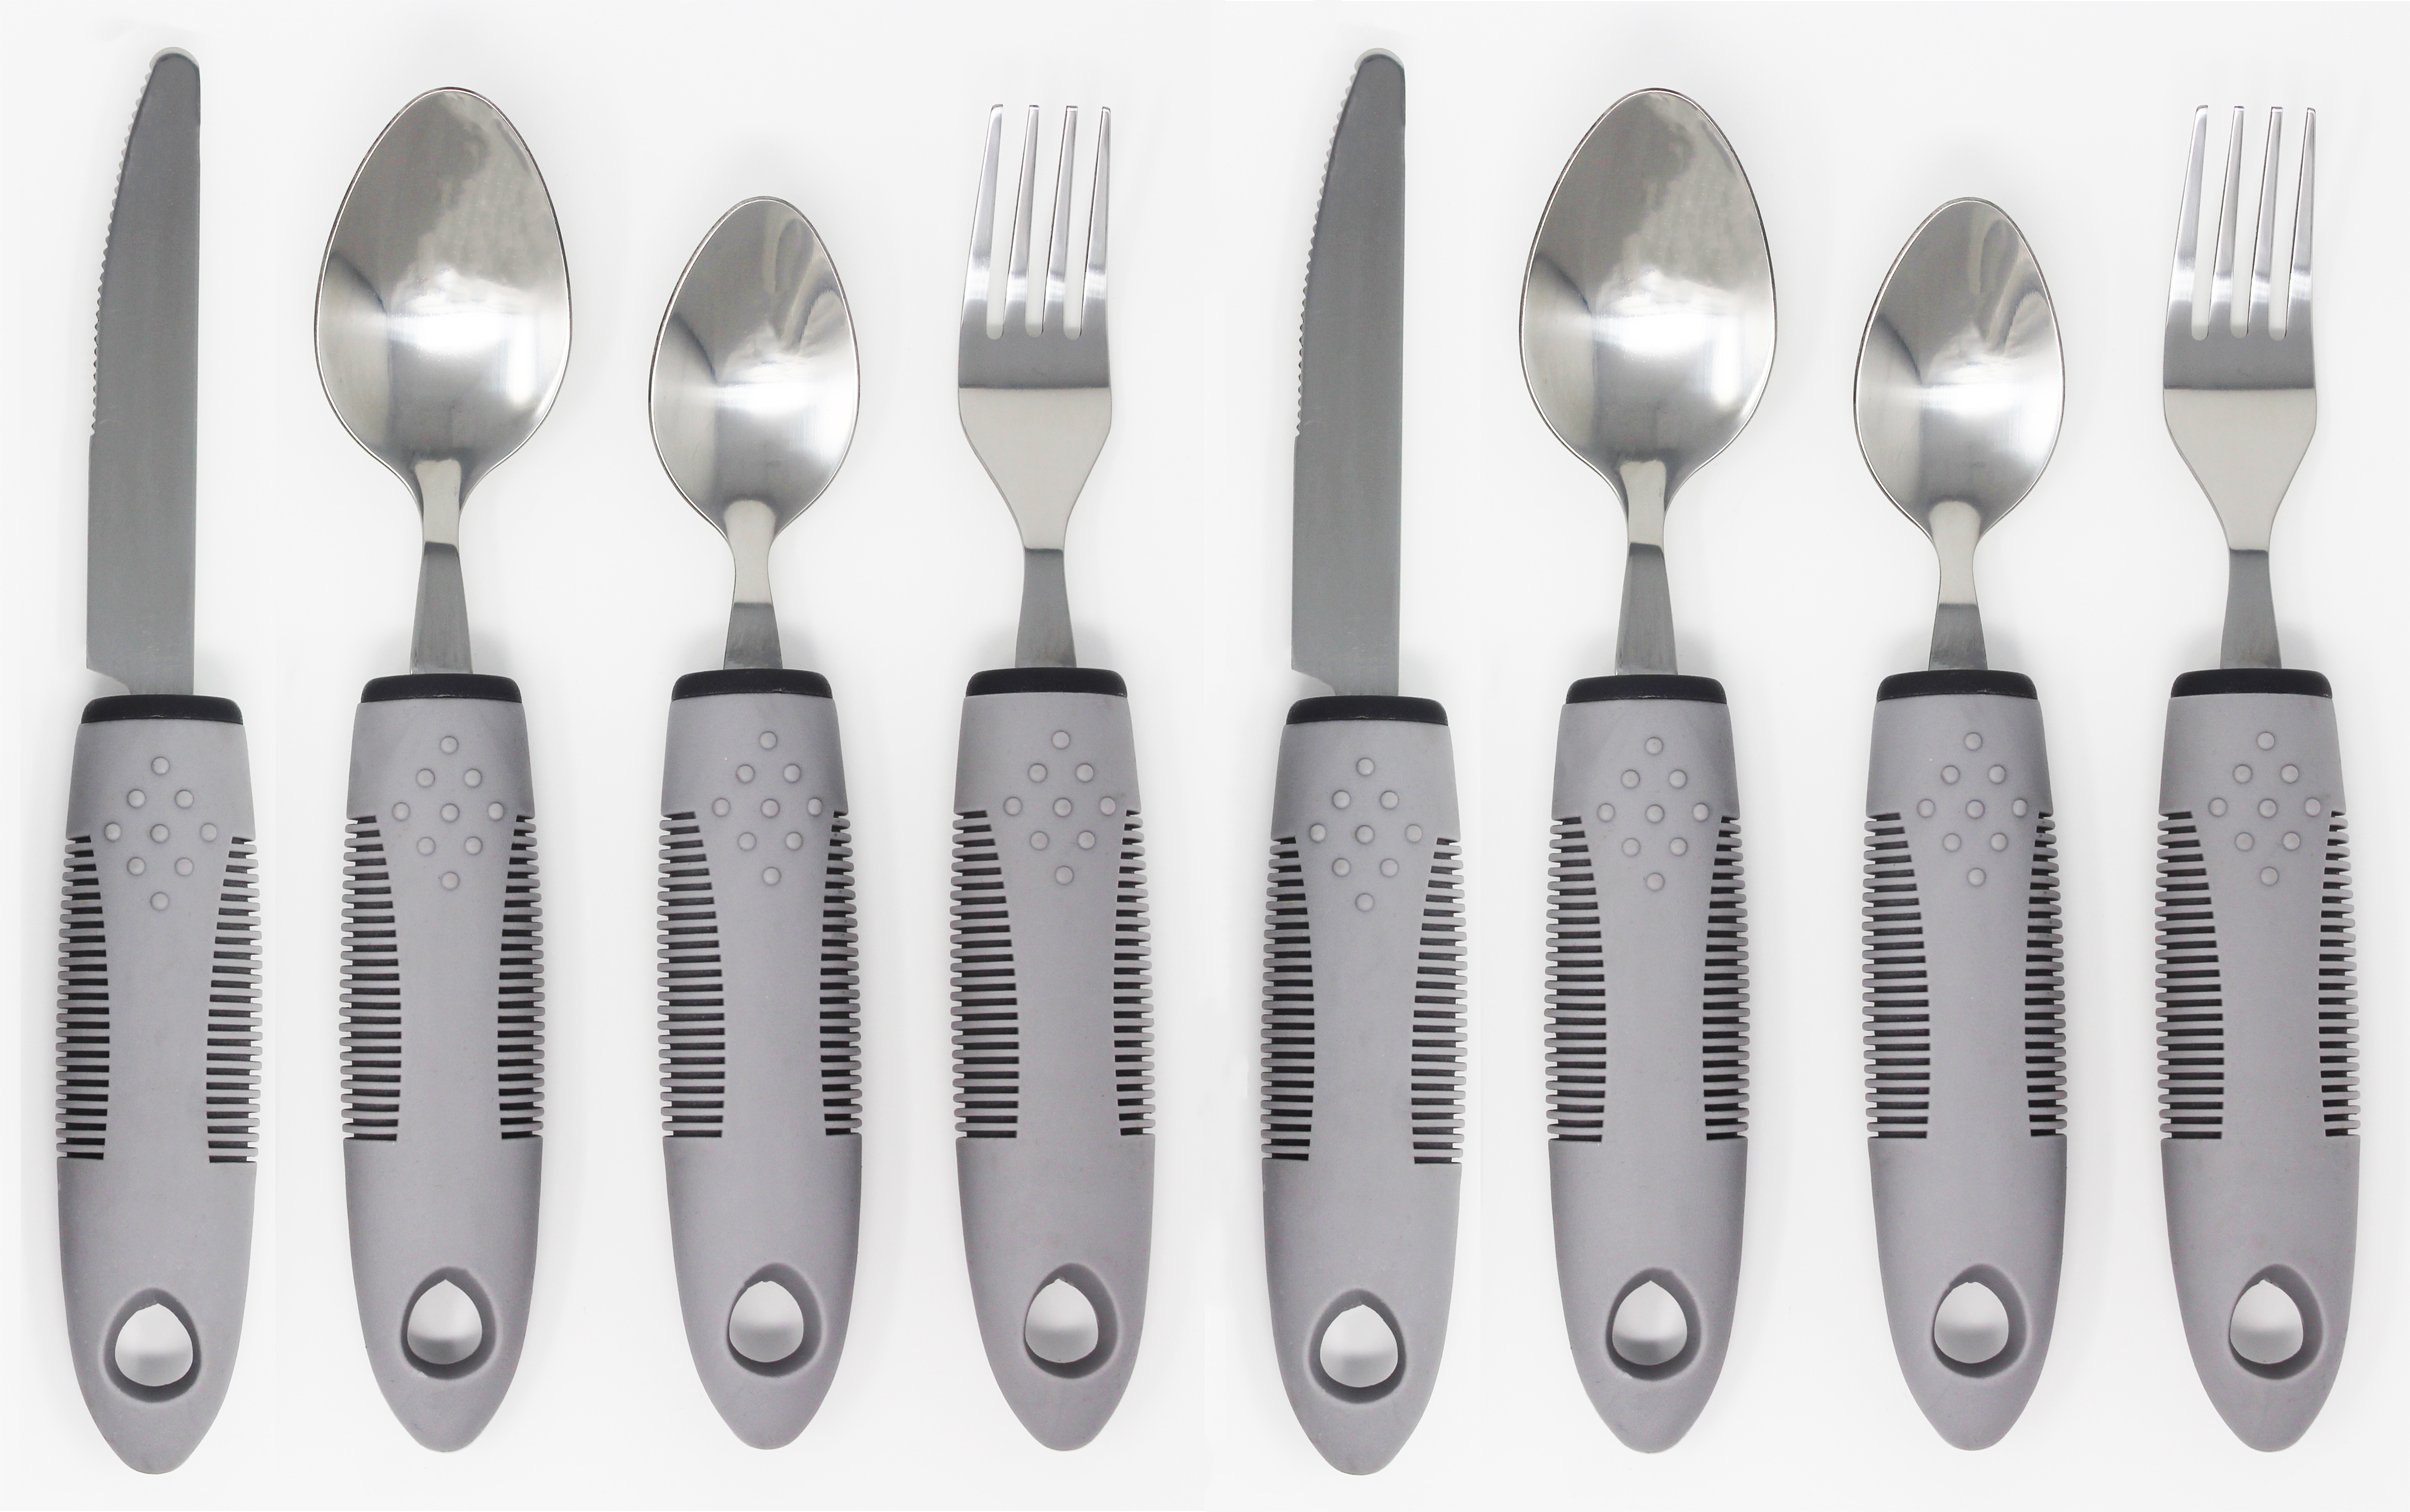 Adaptive Utensils (8-Piece Kitchen Set) Wide, Non-Weighted, Non-Slip Handles for Hand Tremors, Arthritis, Parkinson's or Elderly use | Stainless Steel Knife, Fork, Spoons (Gray - 2 Sets)